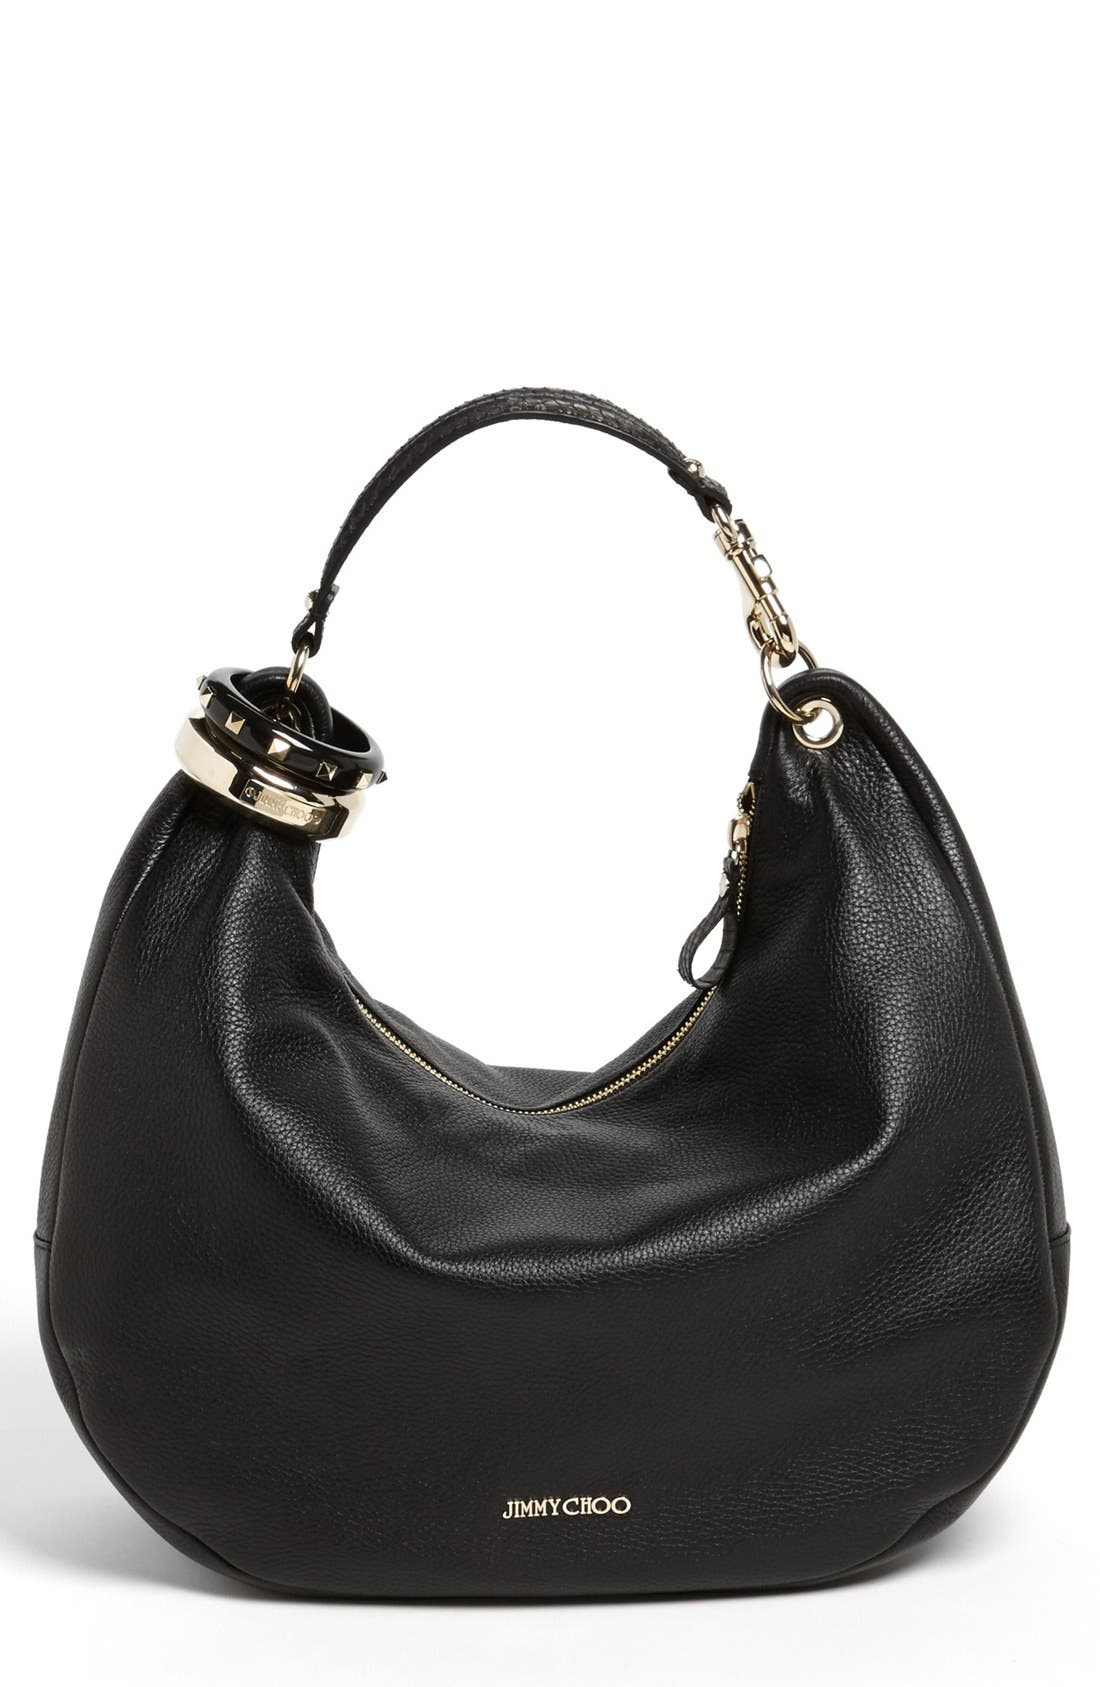 Main Image - Jimmy Choo 'Large Solar' Leather Hobo